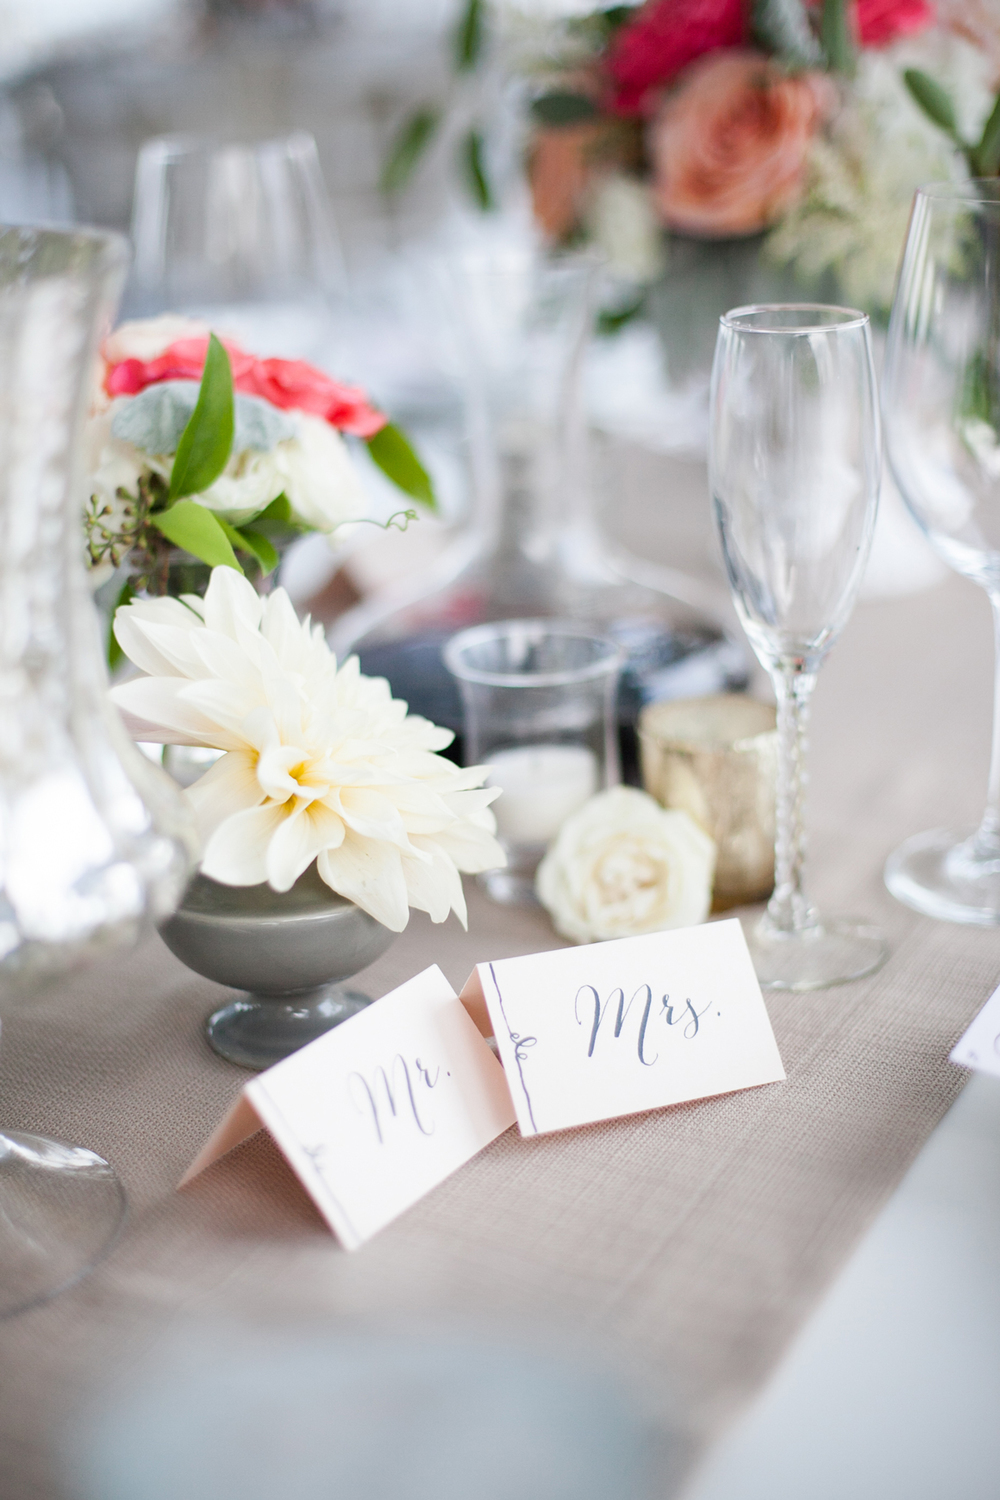 placecards-bride-groom.jpg